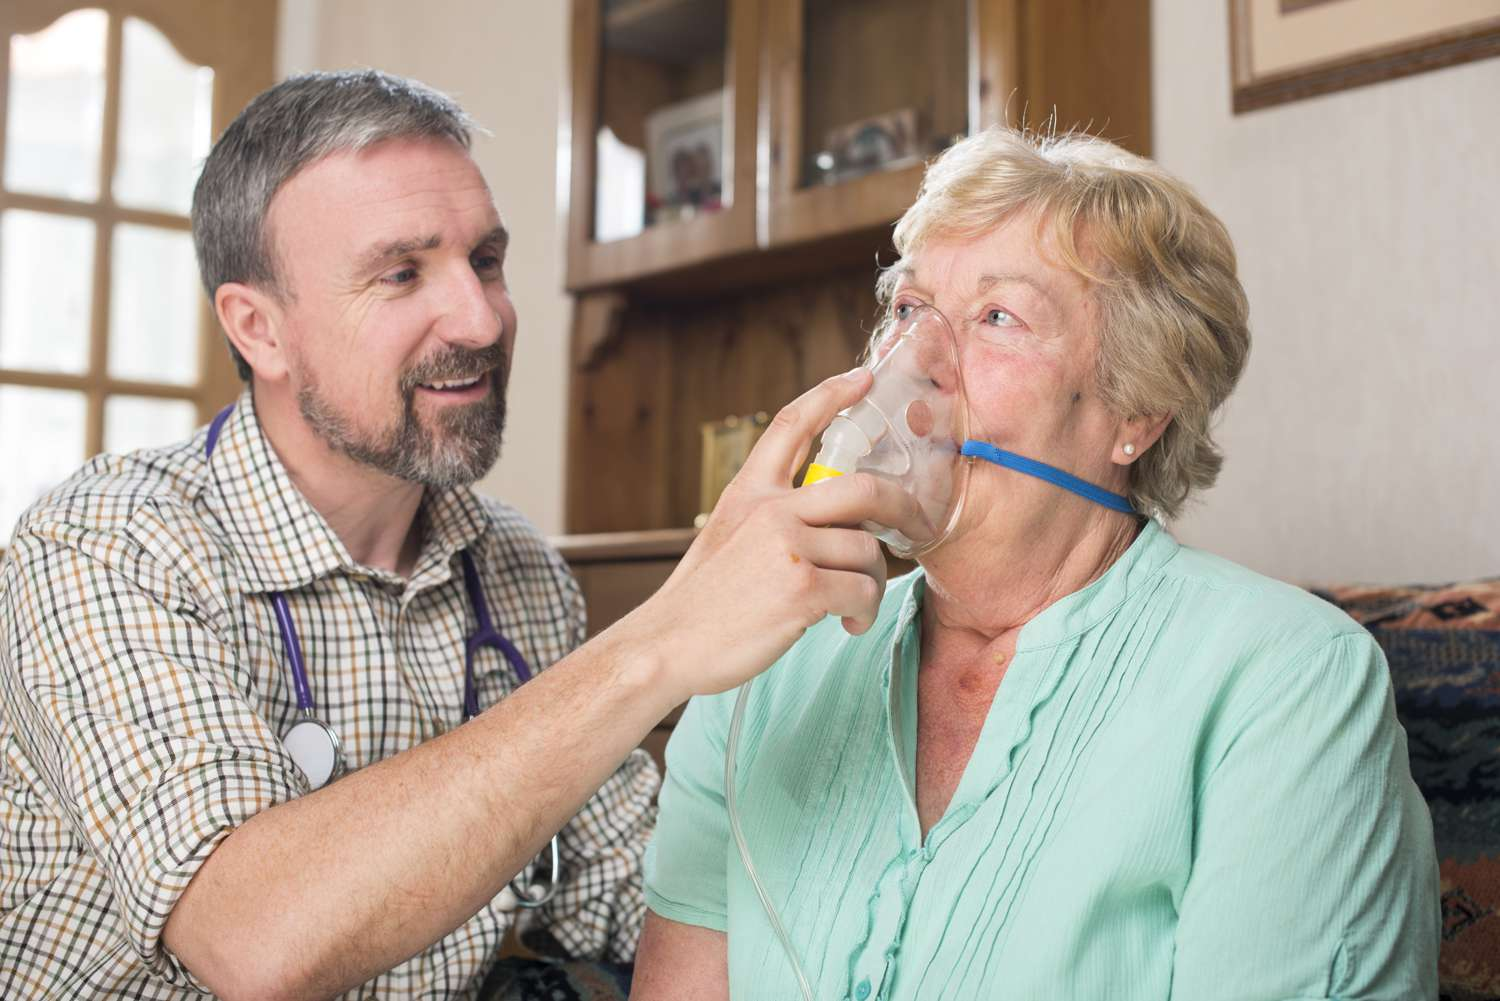 Health professional administering oxygen